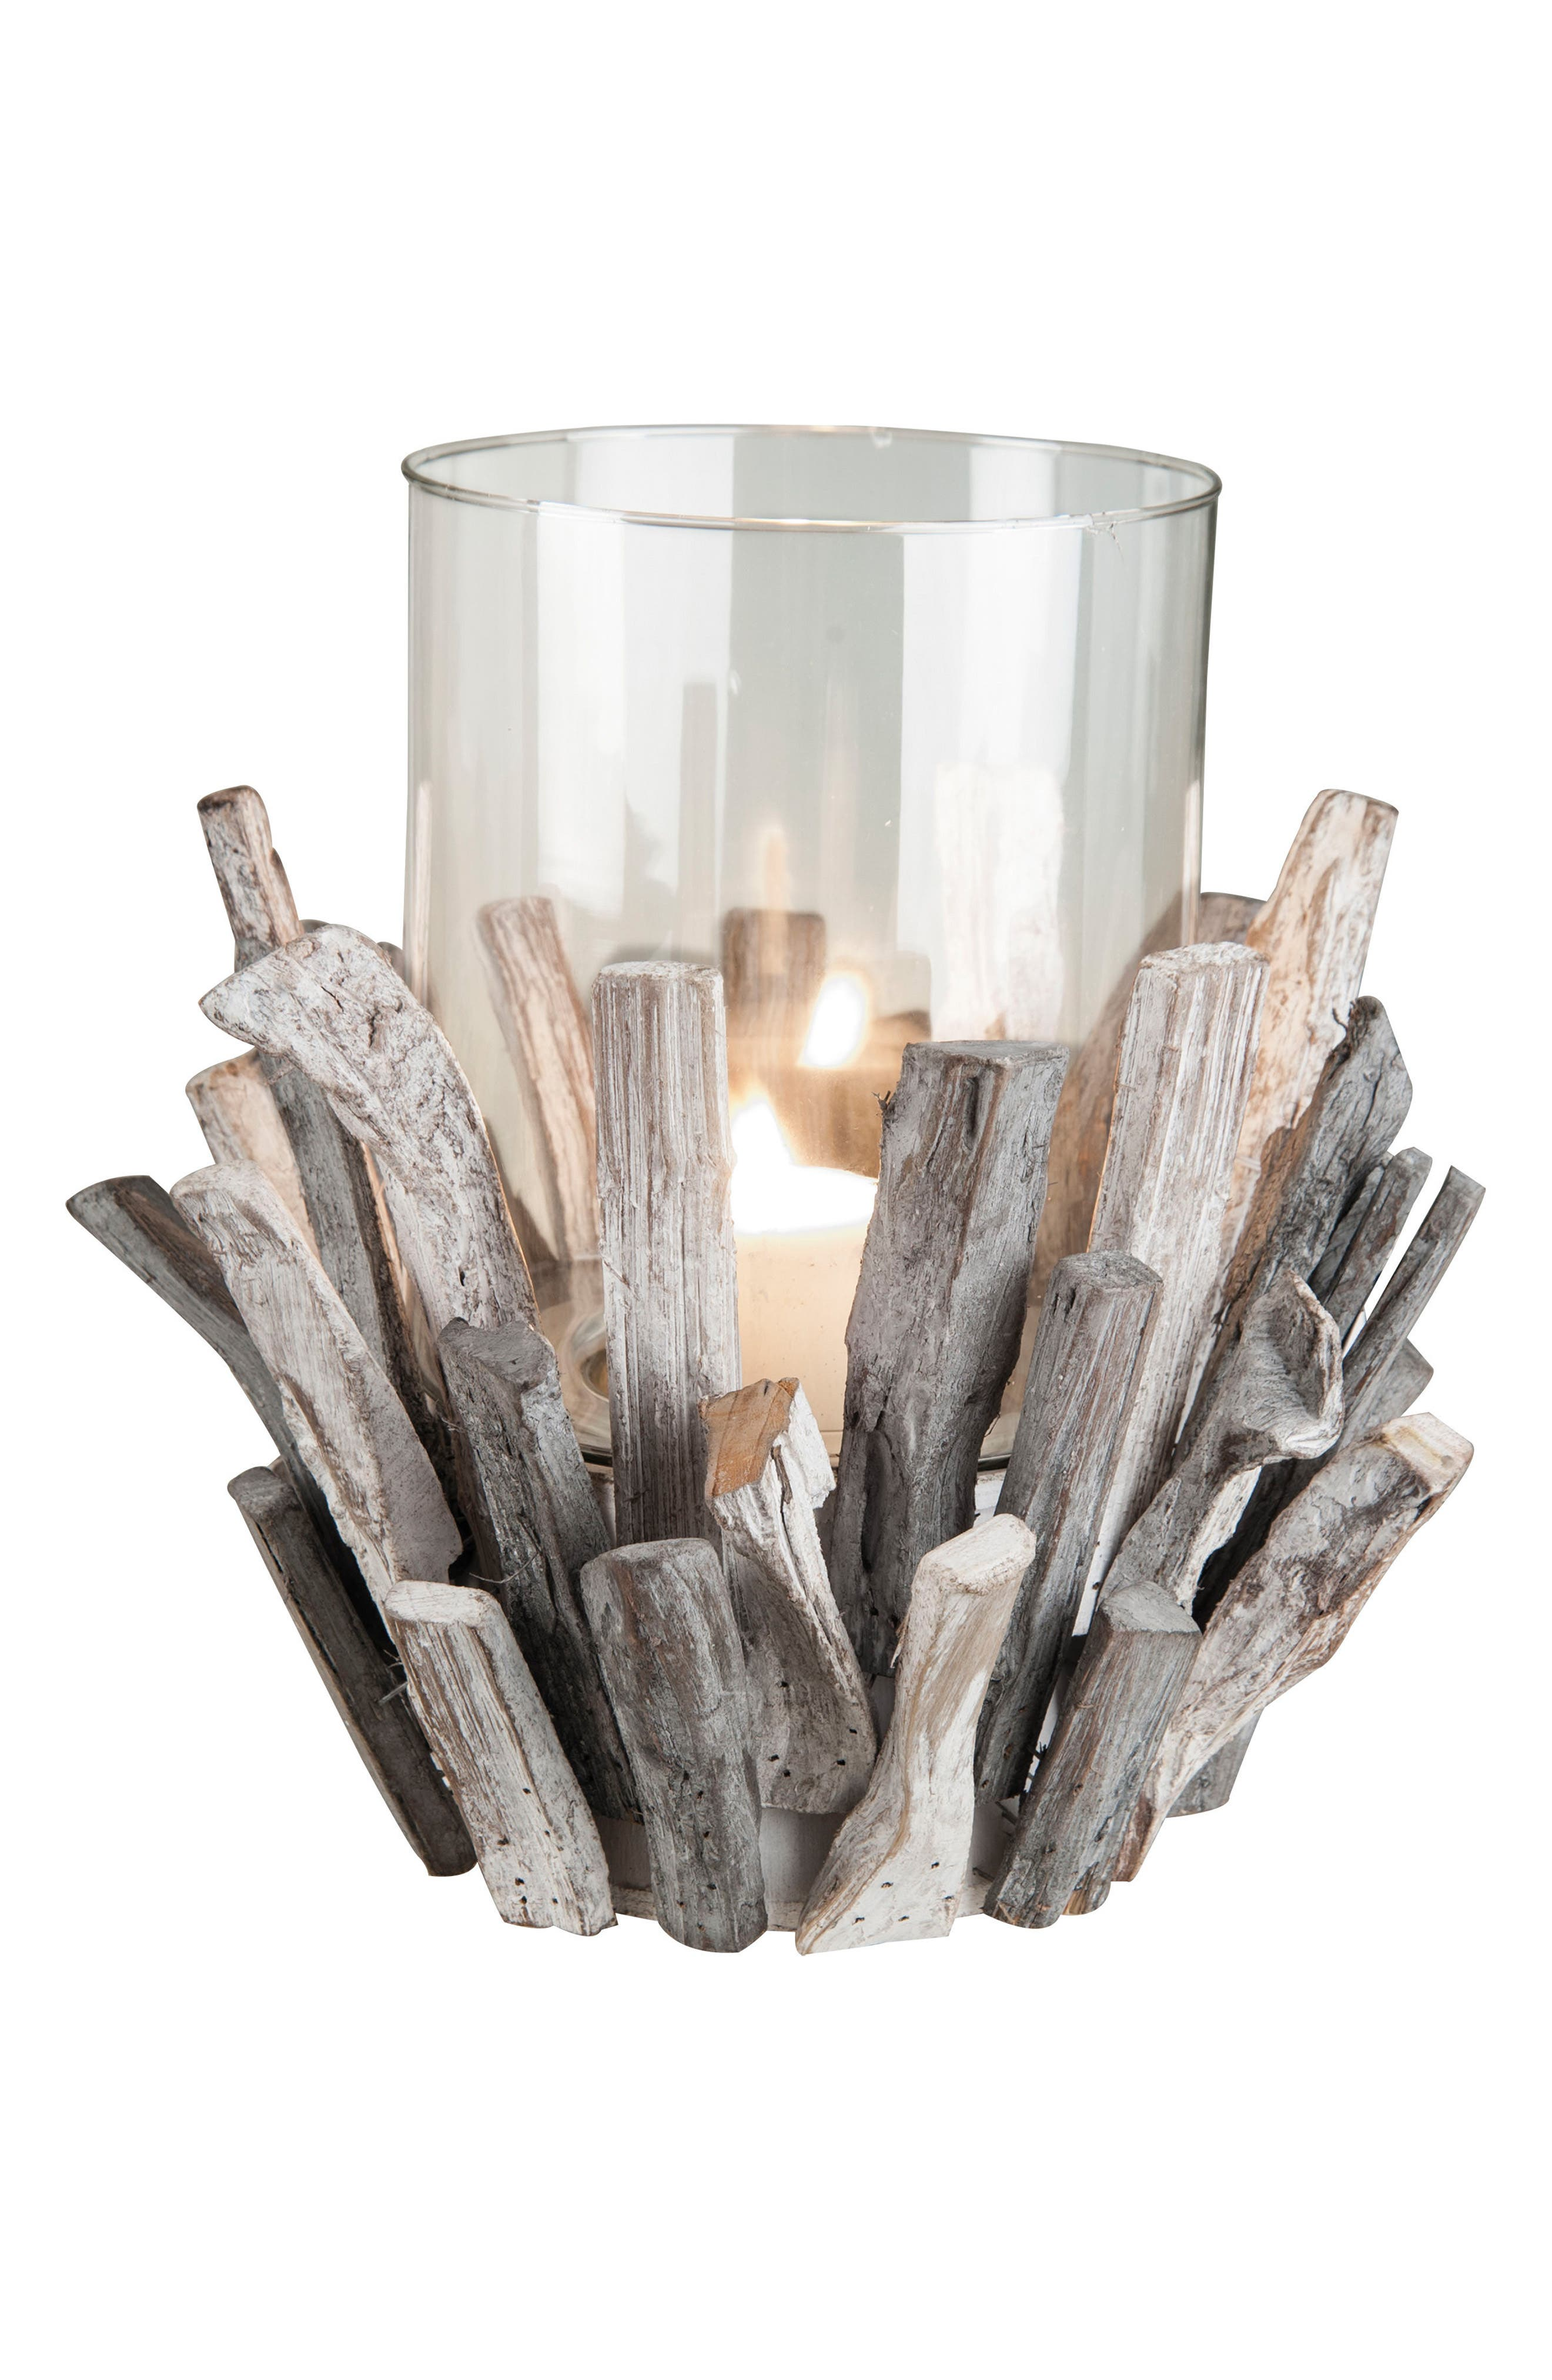 Wood & Glass Candle Holder,                             Main thumbnail 1, color,                             200